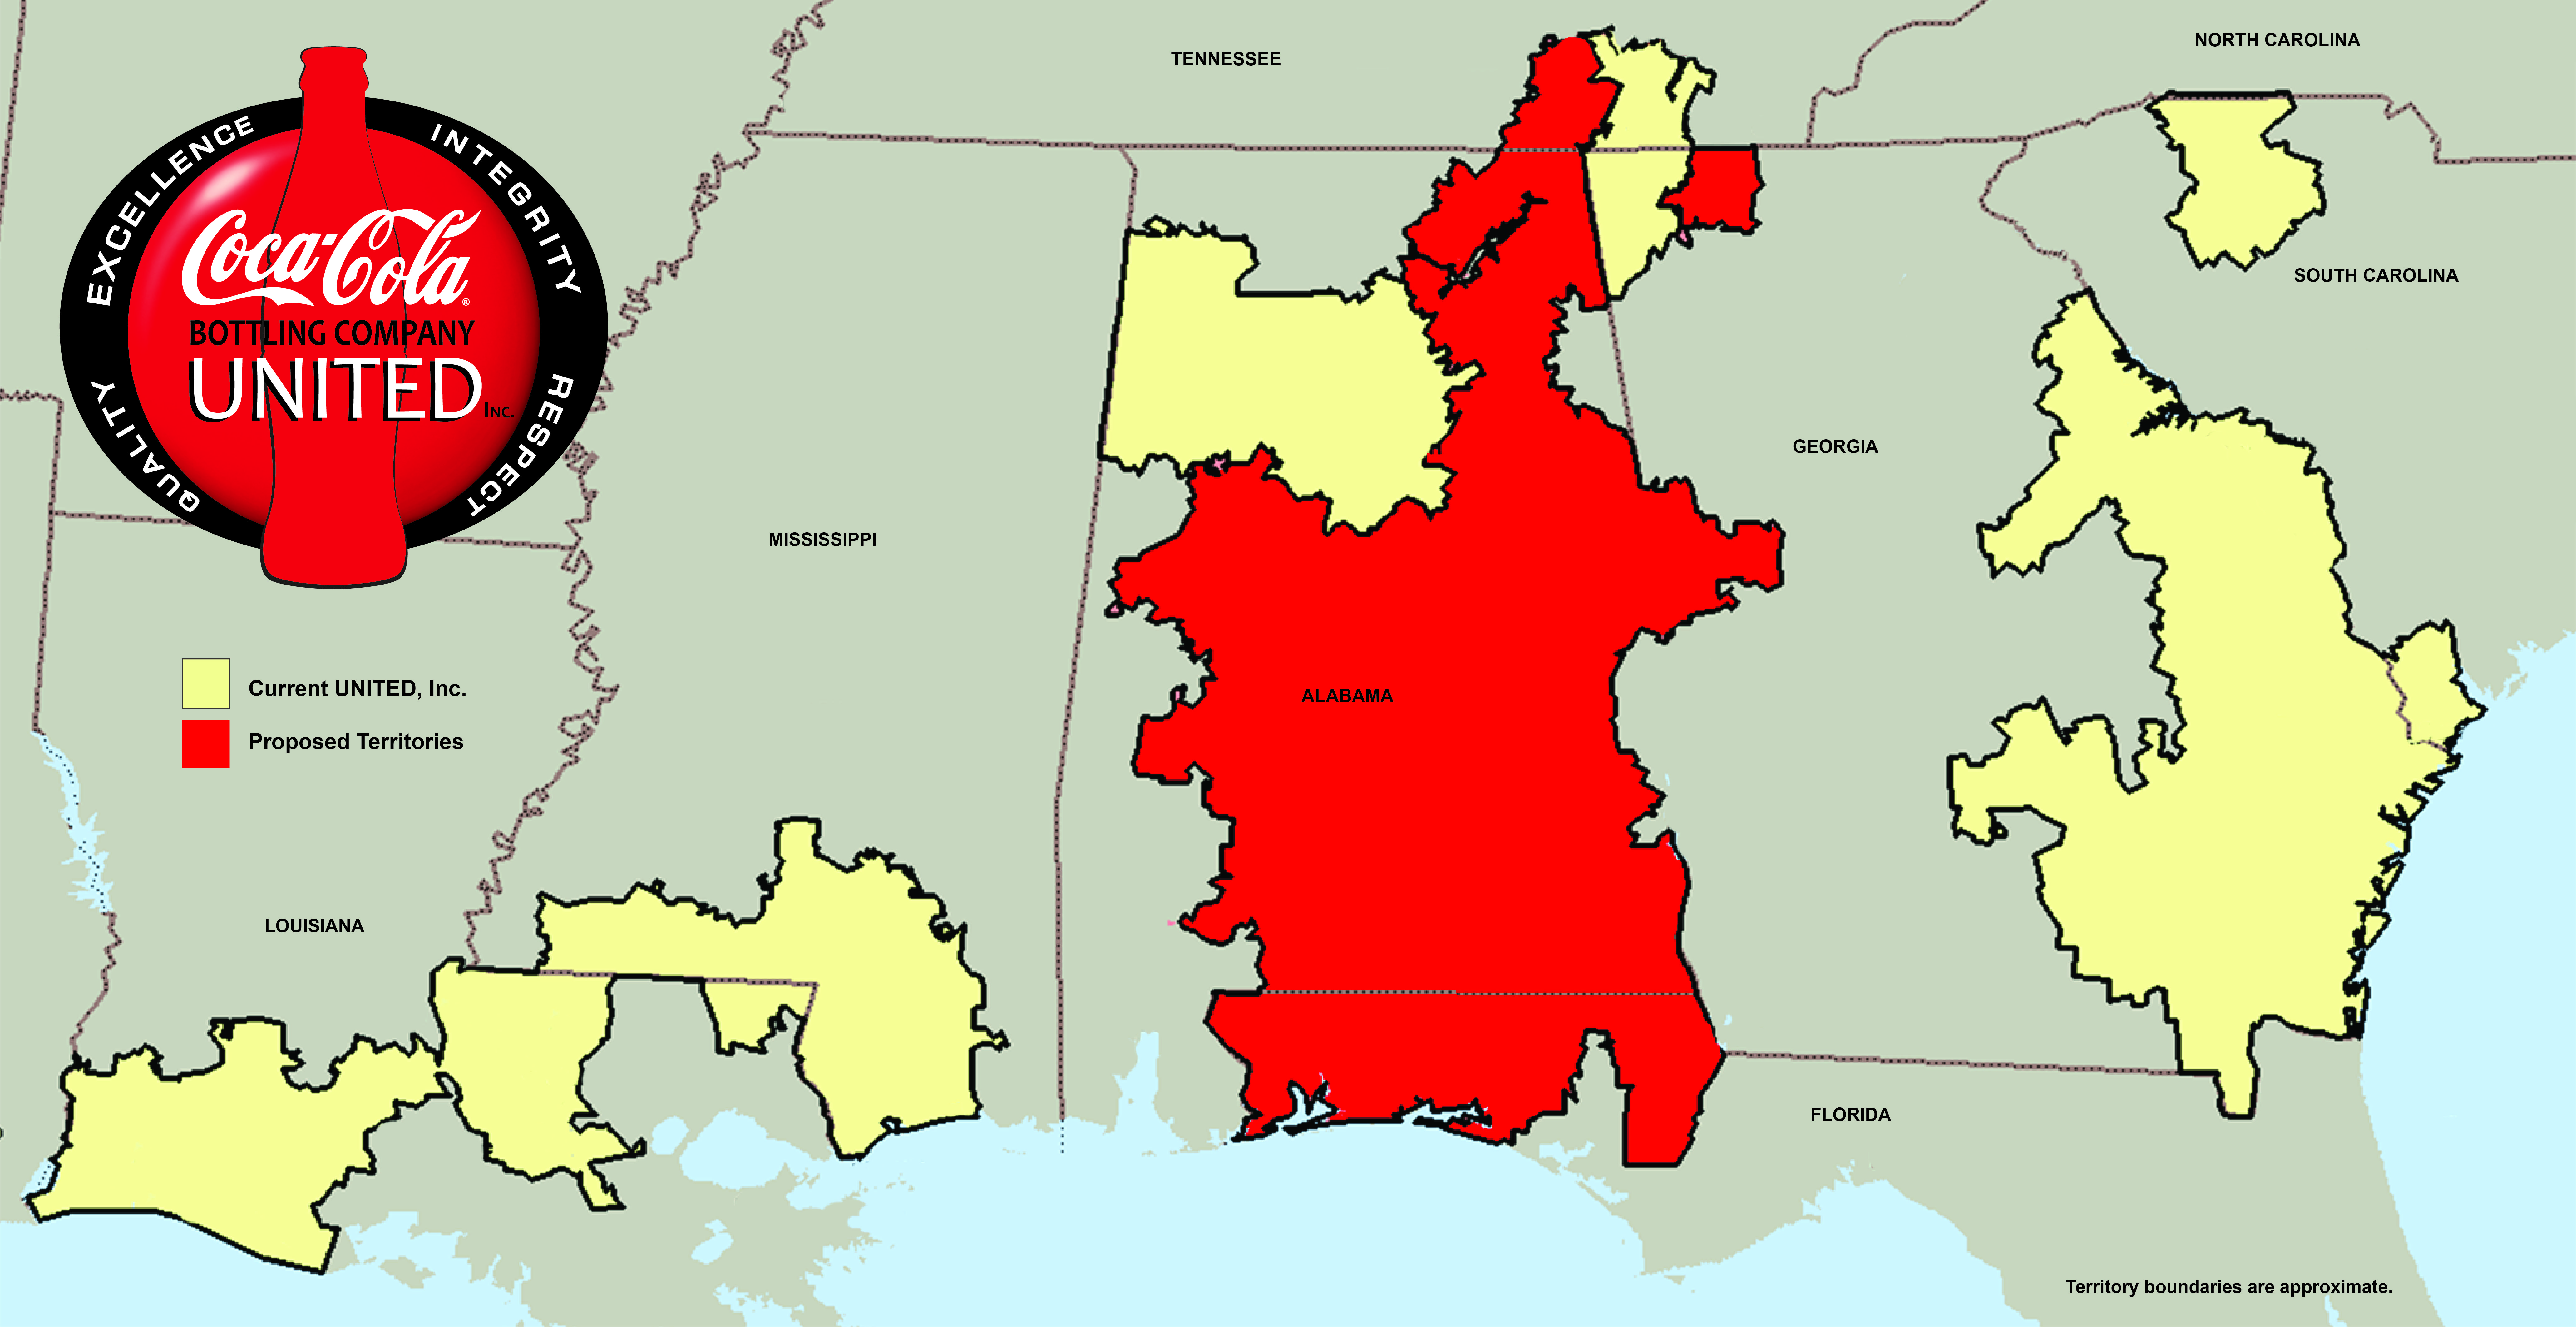 statesboro ga map with Coca Cola United Plans Expansion In Alabama Florida Georgia And Tennessee on 6537845819 besides Statesboro Ga purzuit likewise Euro Trucks 2 as well Carte as well Atlantic Coast.